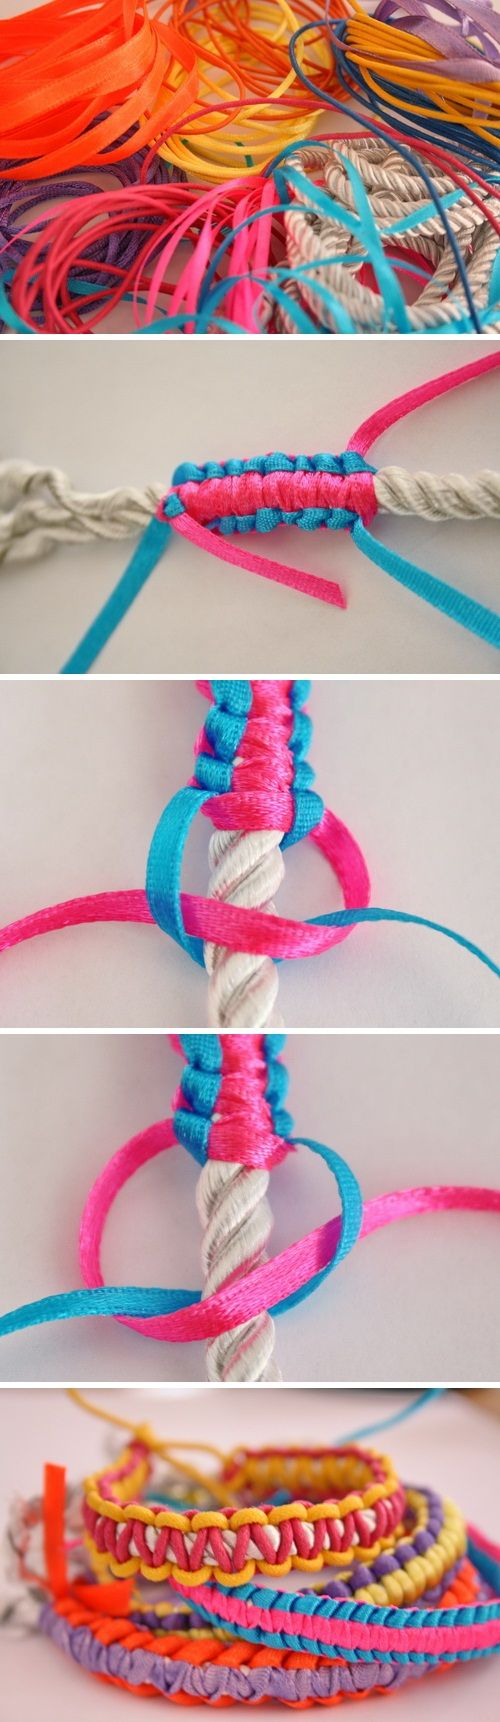 ribbons and cords is going to try this!!